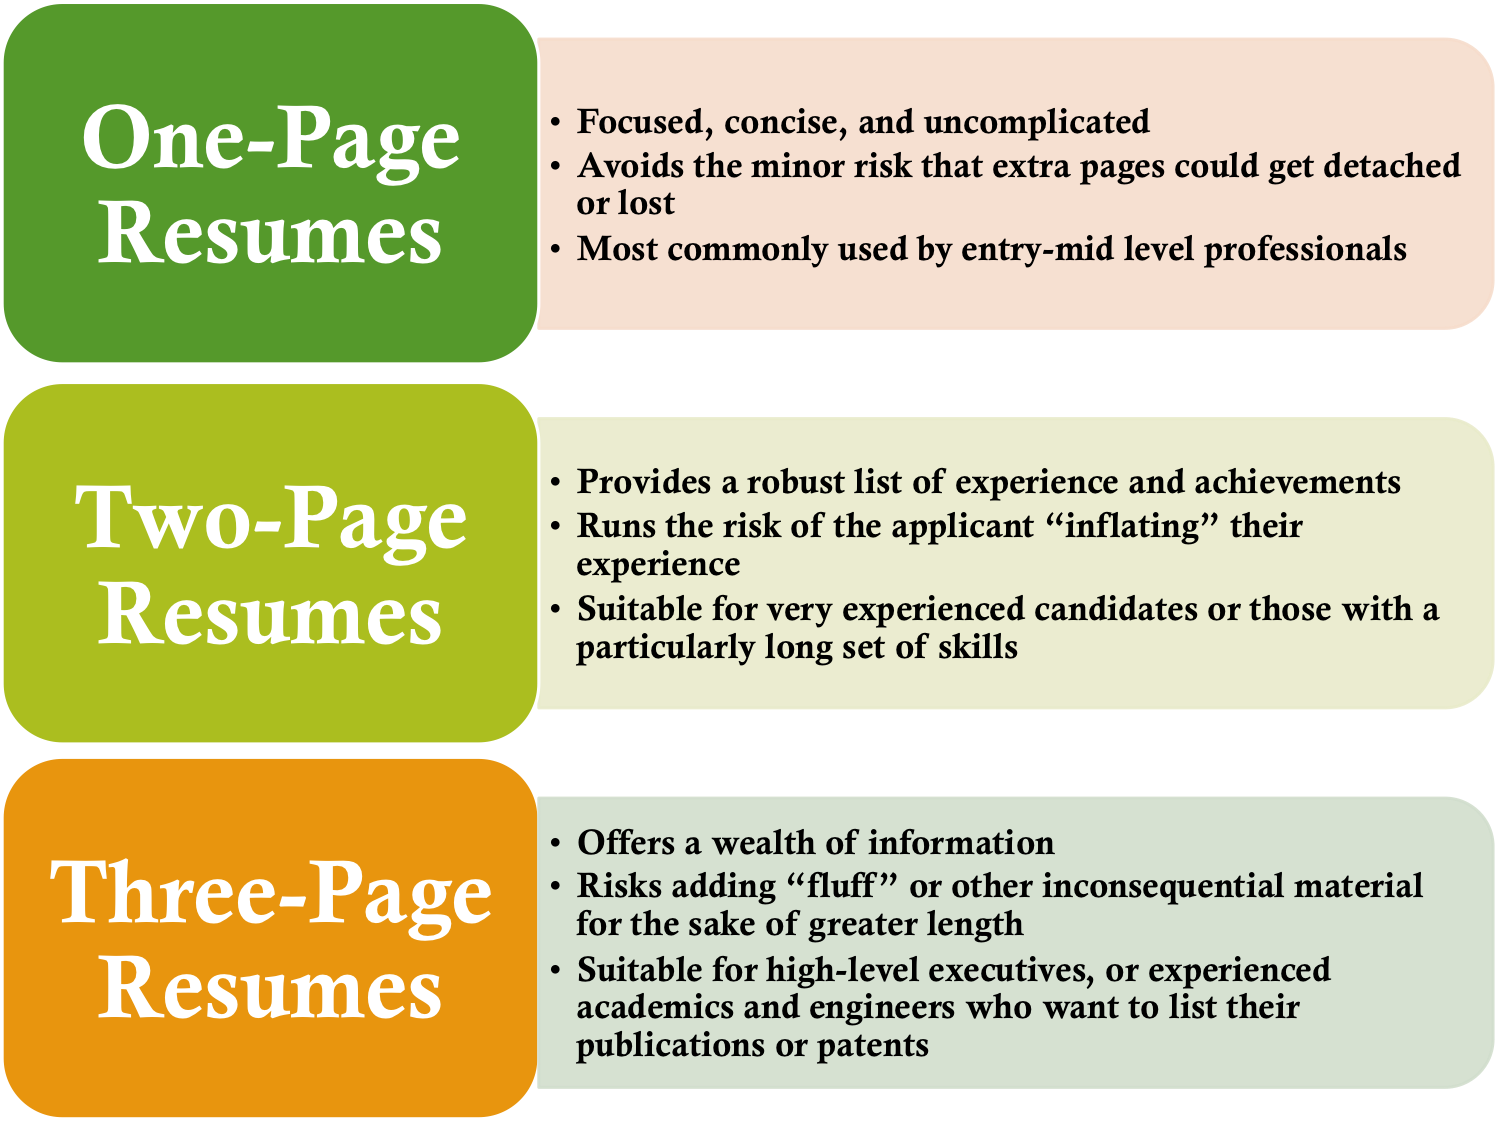 resume aesthetics font margins and paper guidelines resume genius ideal resume length